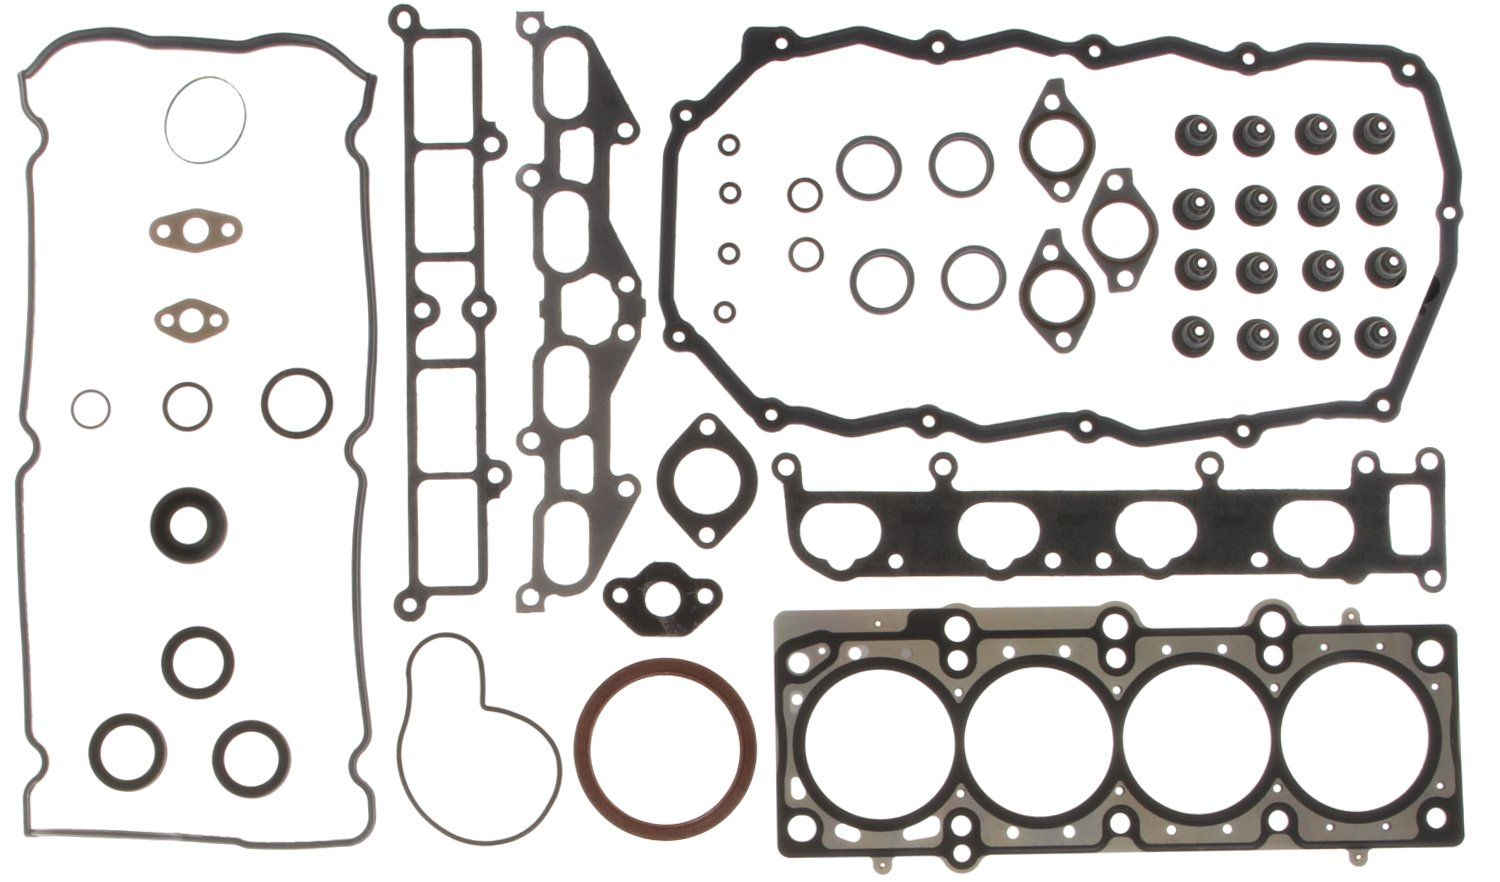 1997 dodge caravan gasket set